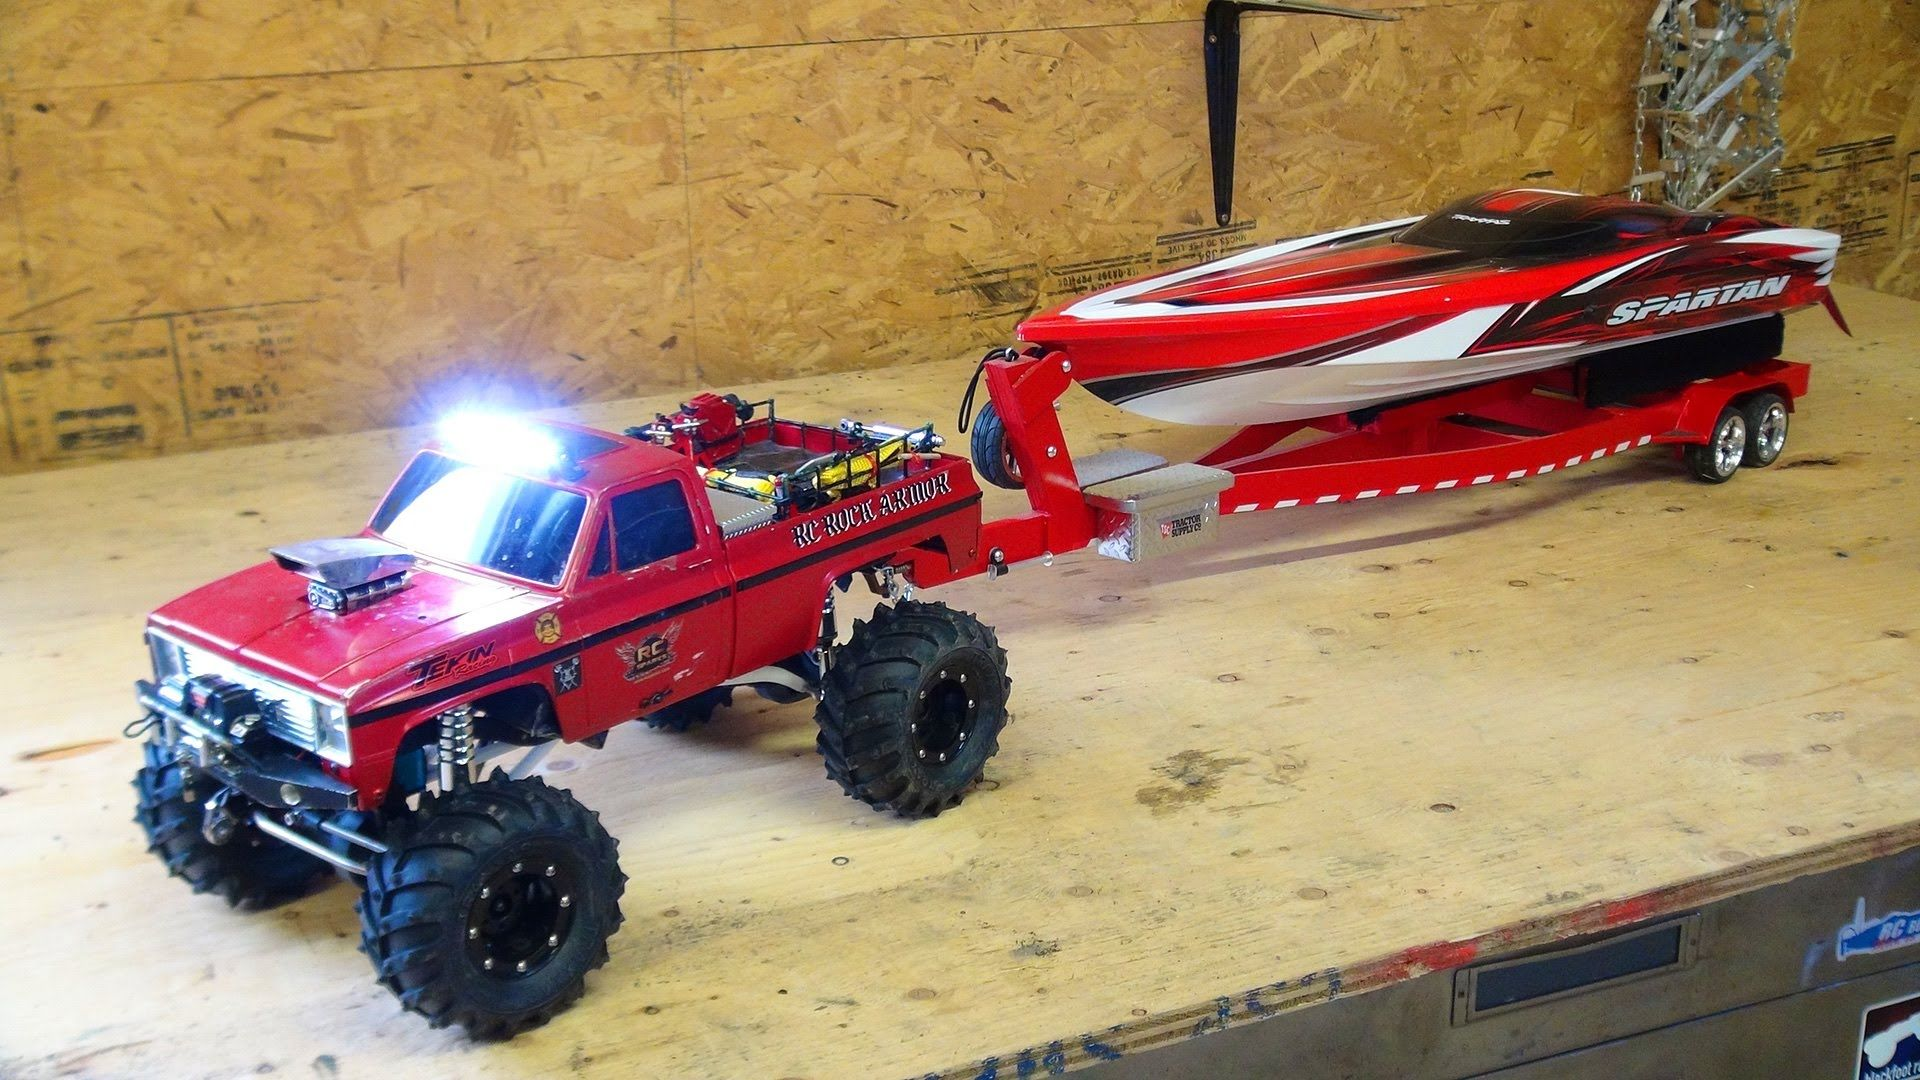 RC ADVENTURES Beast 4x4 with a Cormier Boat Trailer Traxxas Spartan